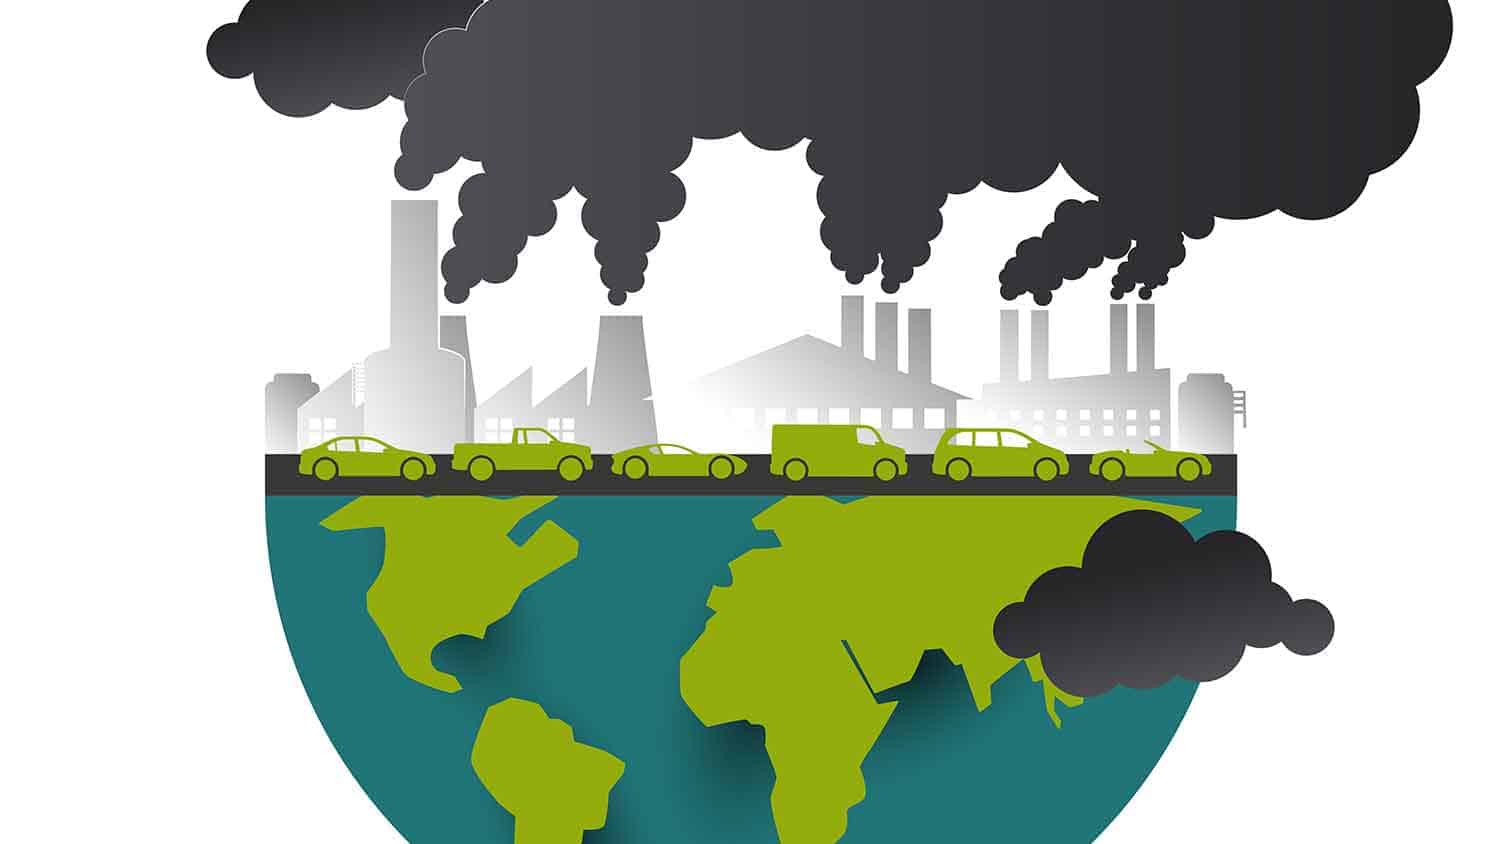 Drawing of cars and industry polluting the planet